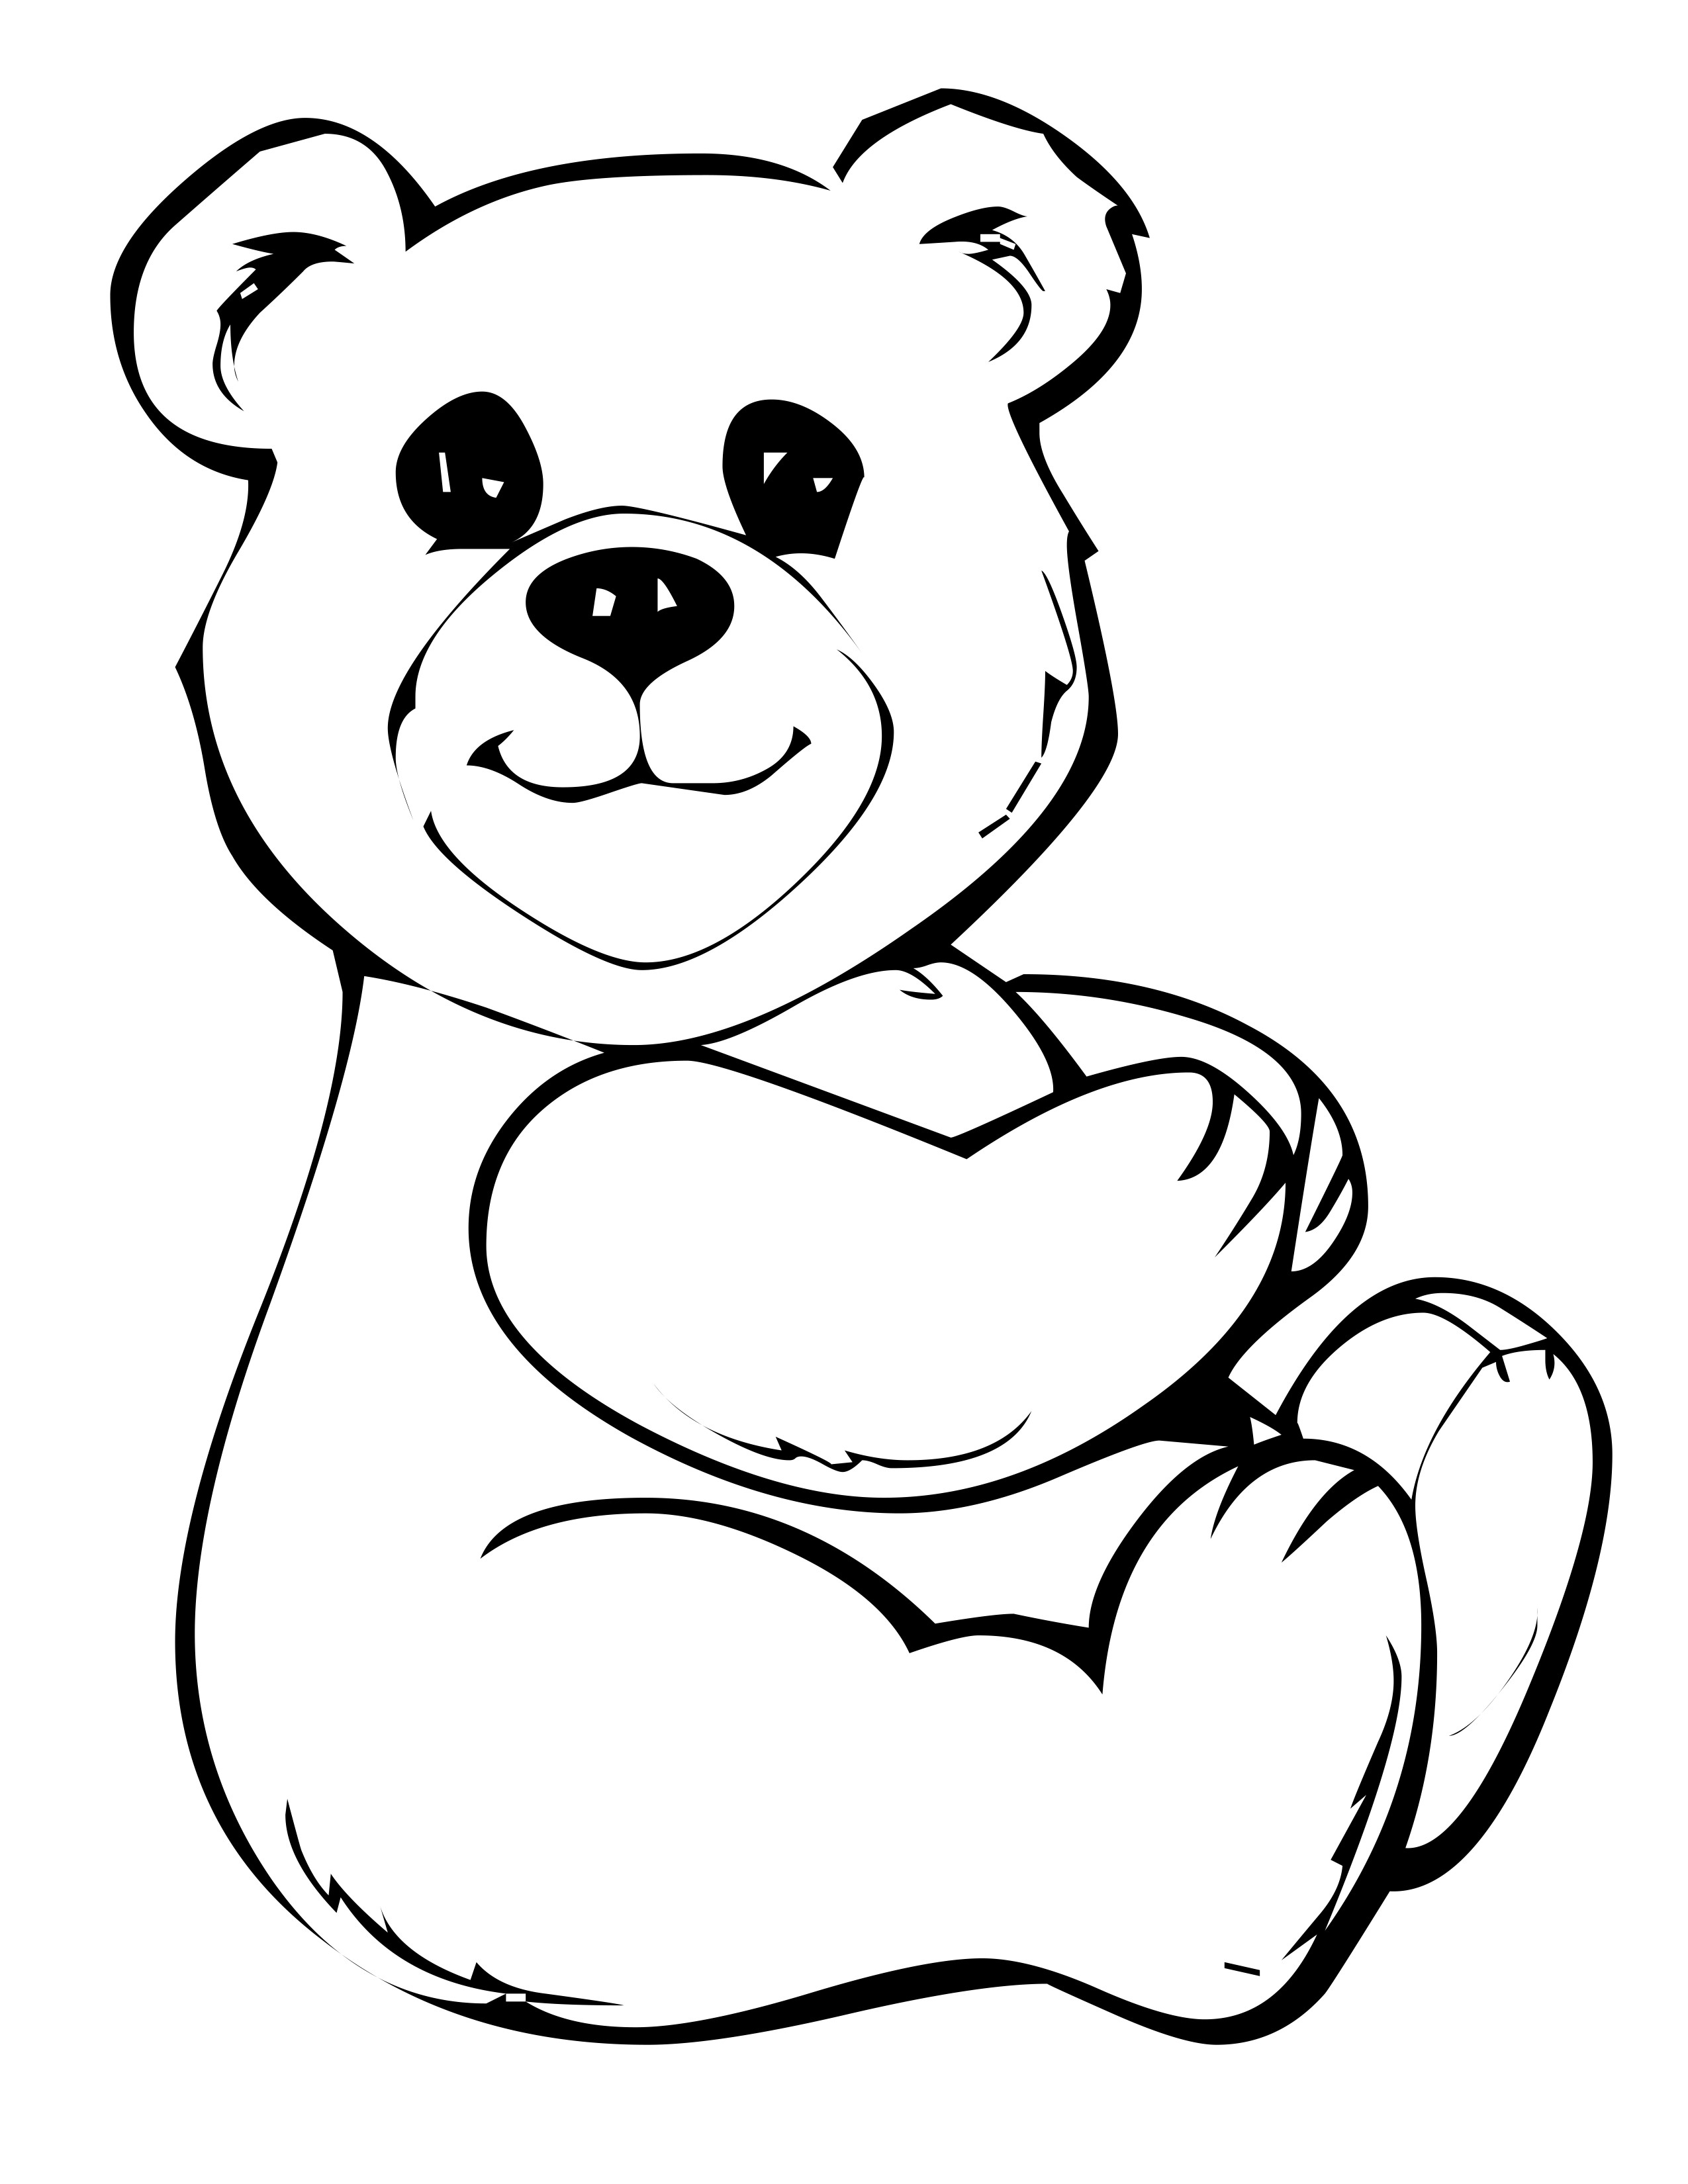 teddy bear colour in teddy bear coloring pages for kids teddy bear colour in